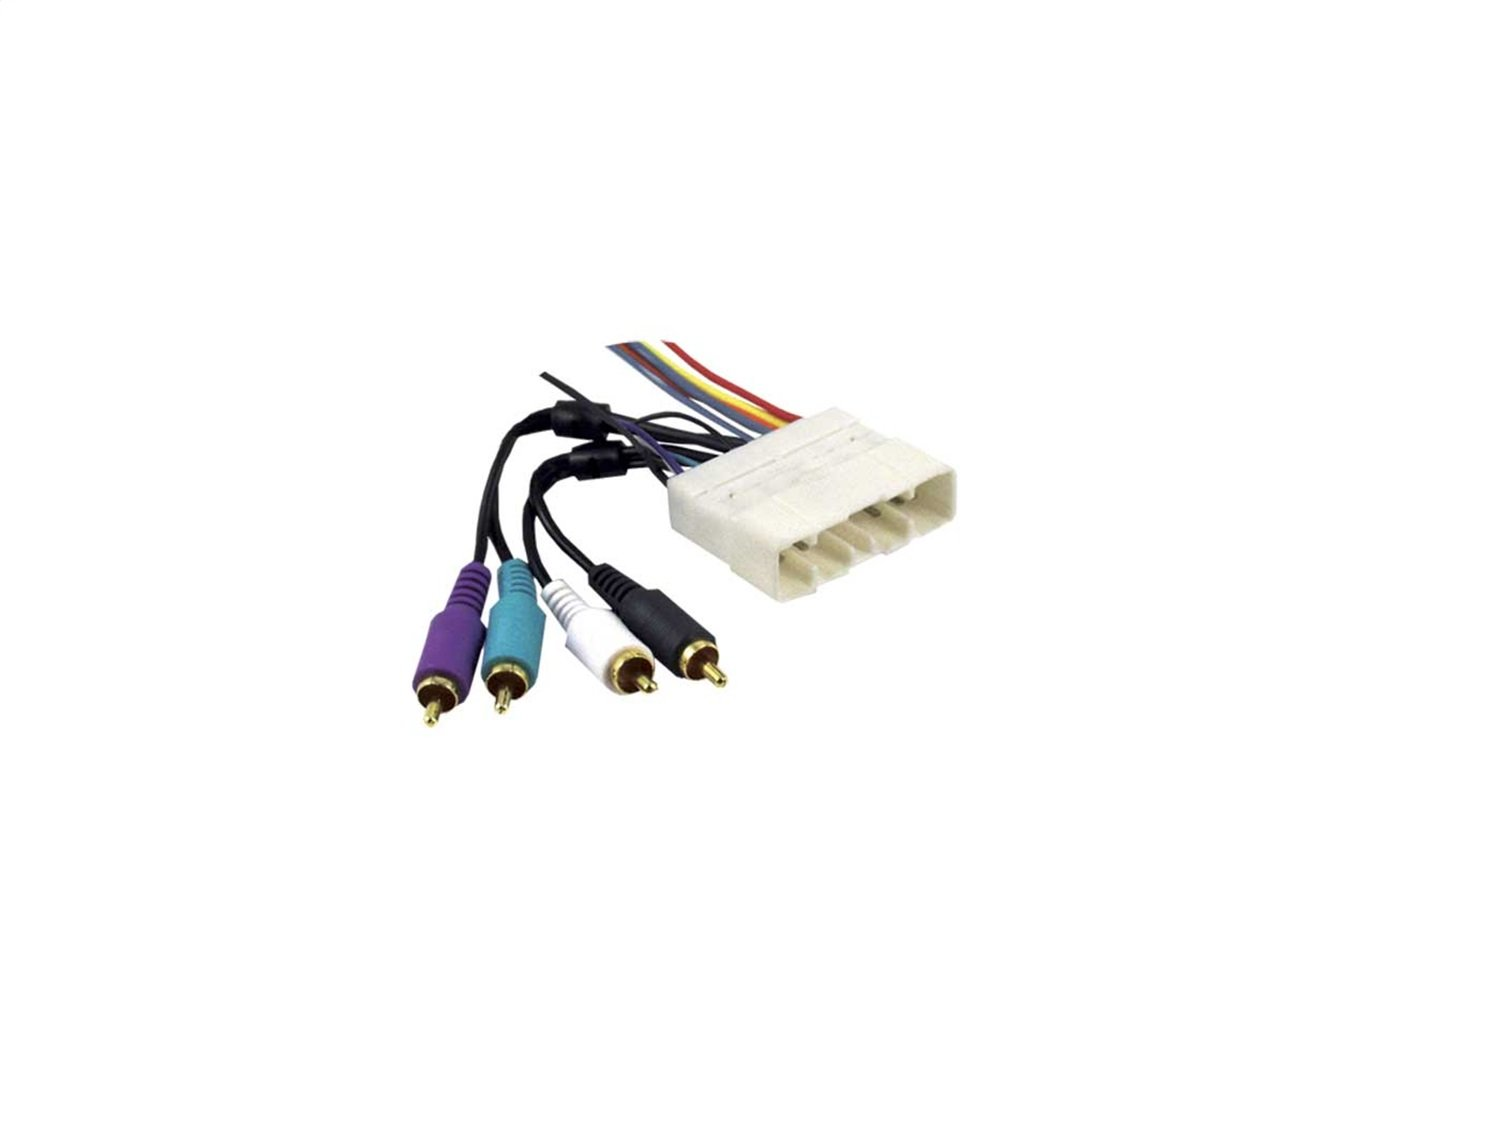 Metra 70-7713 Wiring Harness for 2002 Isuzu Rodeo with Factory Amplifier